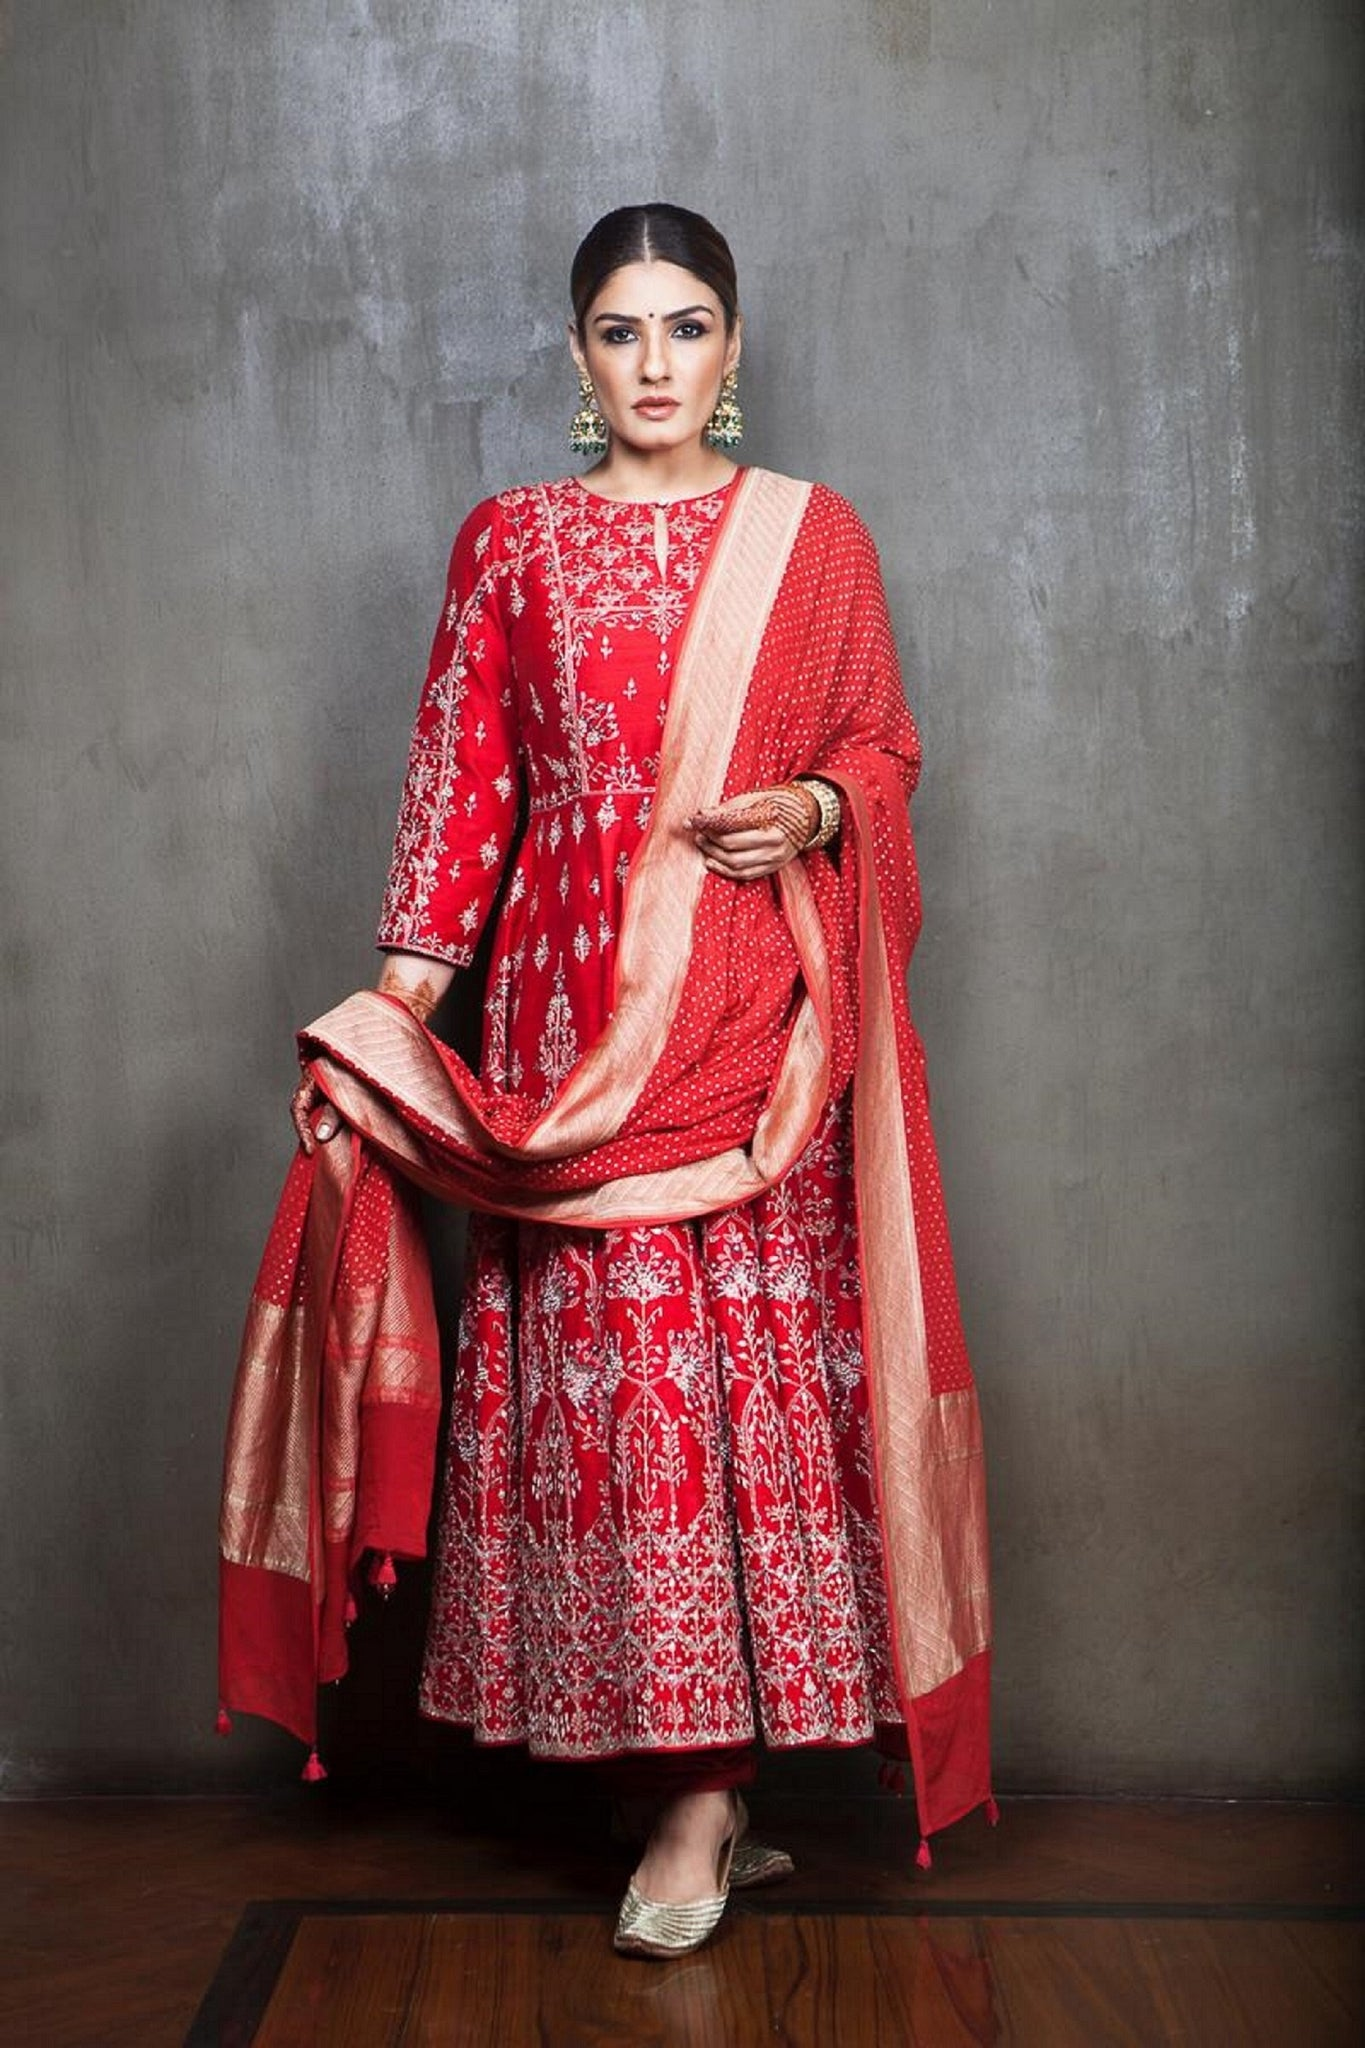 Raveena Tandon in Anita Dongre's Red Anarkali Suit